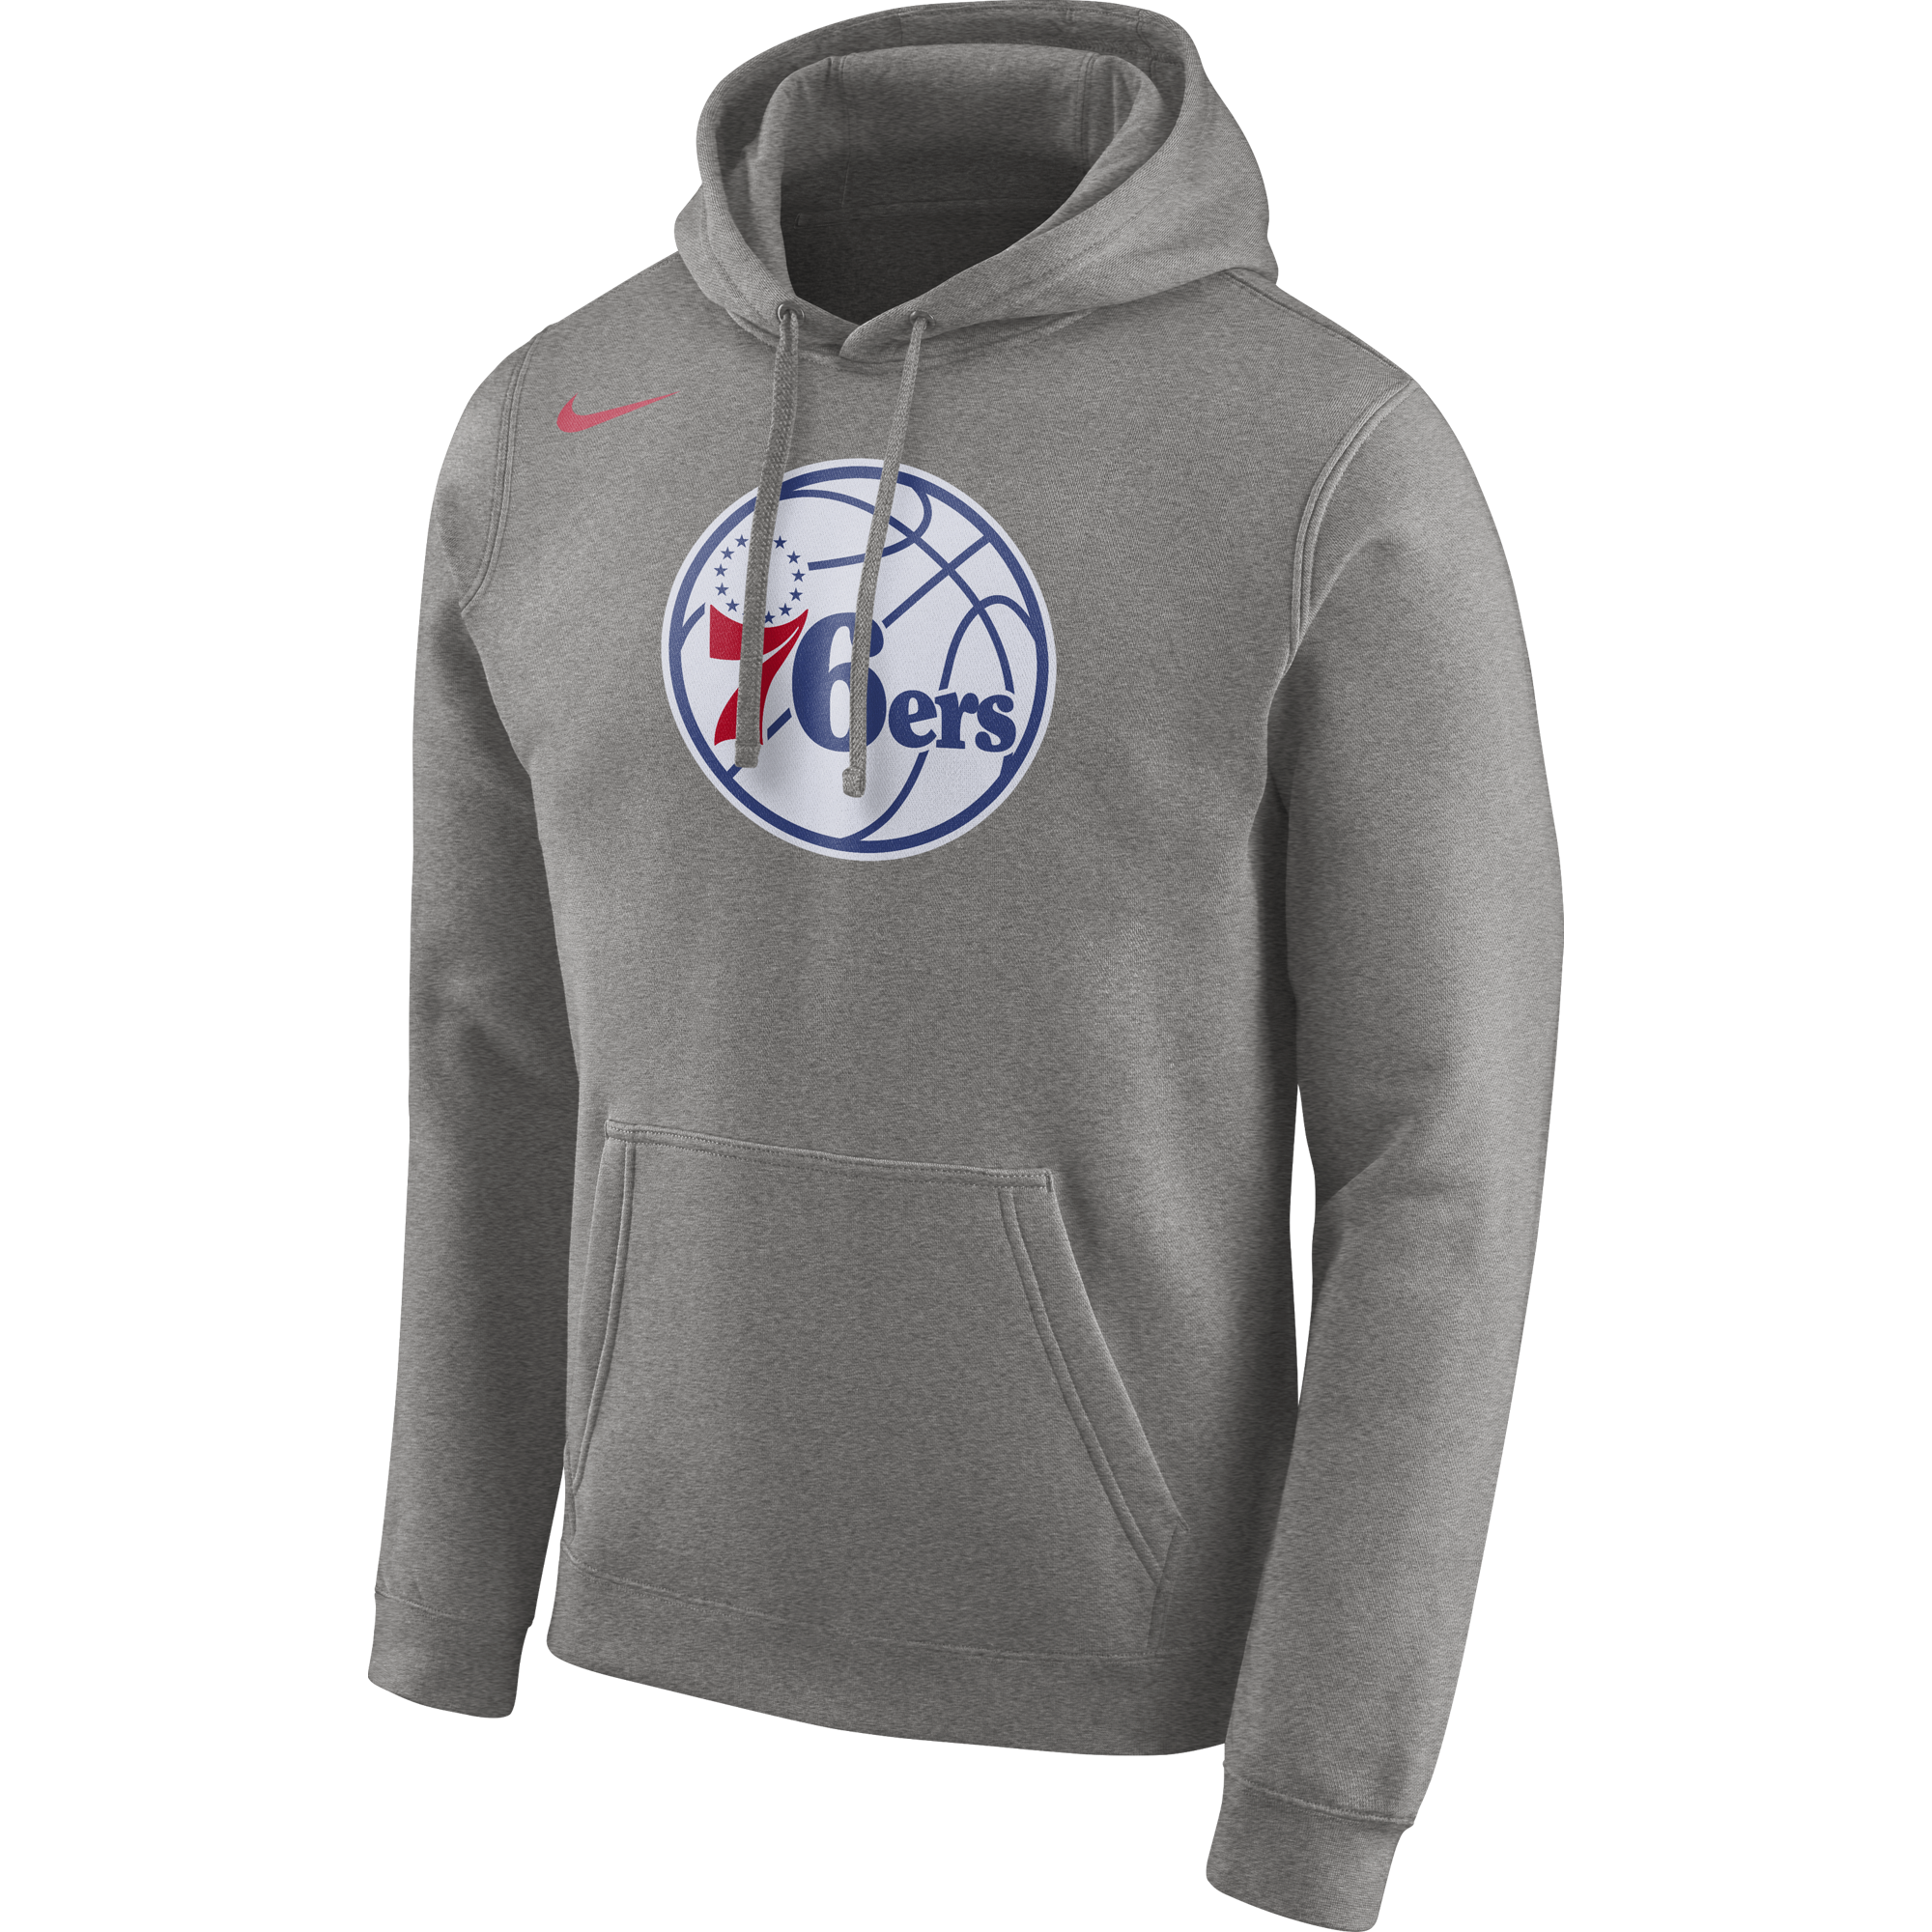 Philadelphia 76ers Men s Grey Fleece Logo Hoodie by Nike - Wells ... 36e662bb1